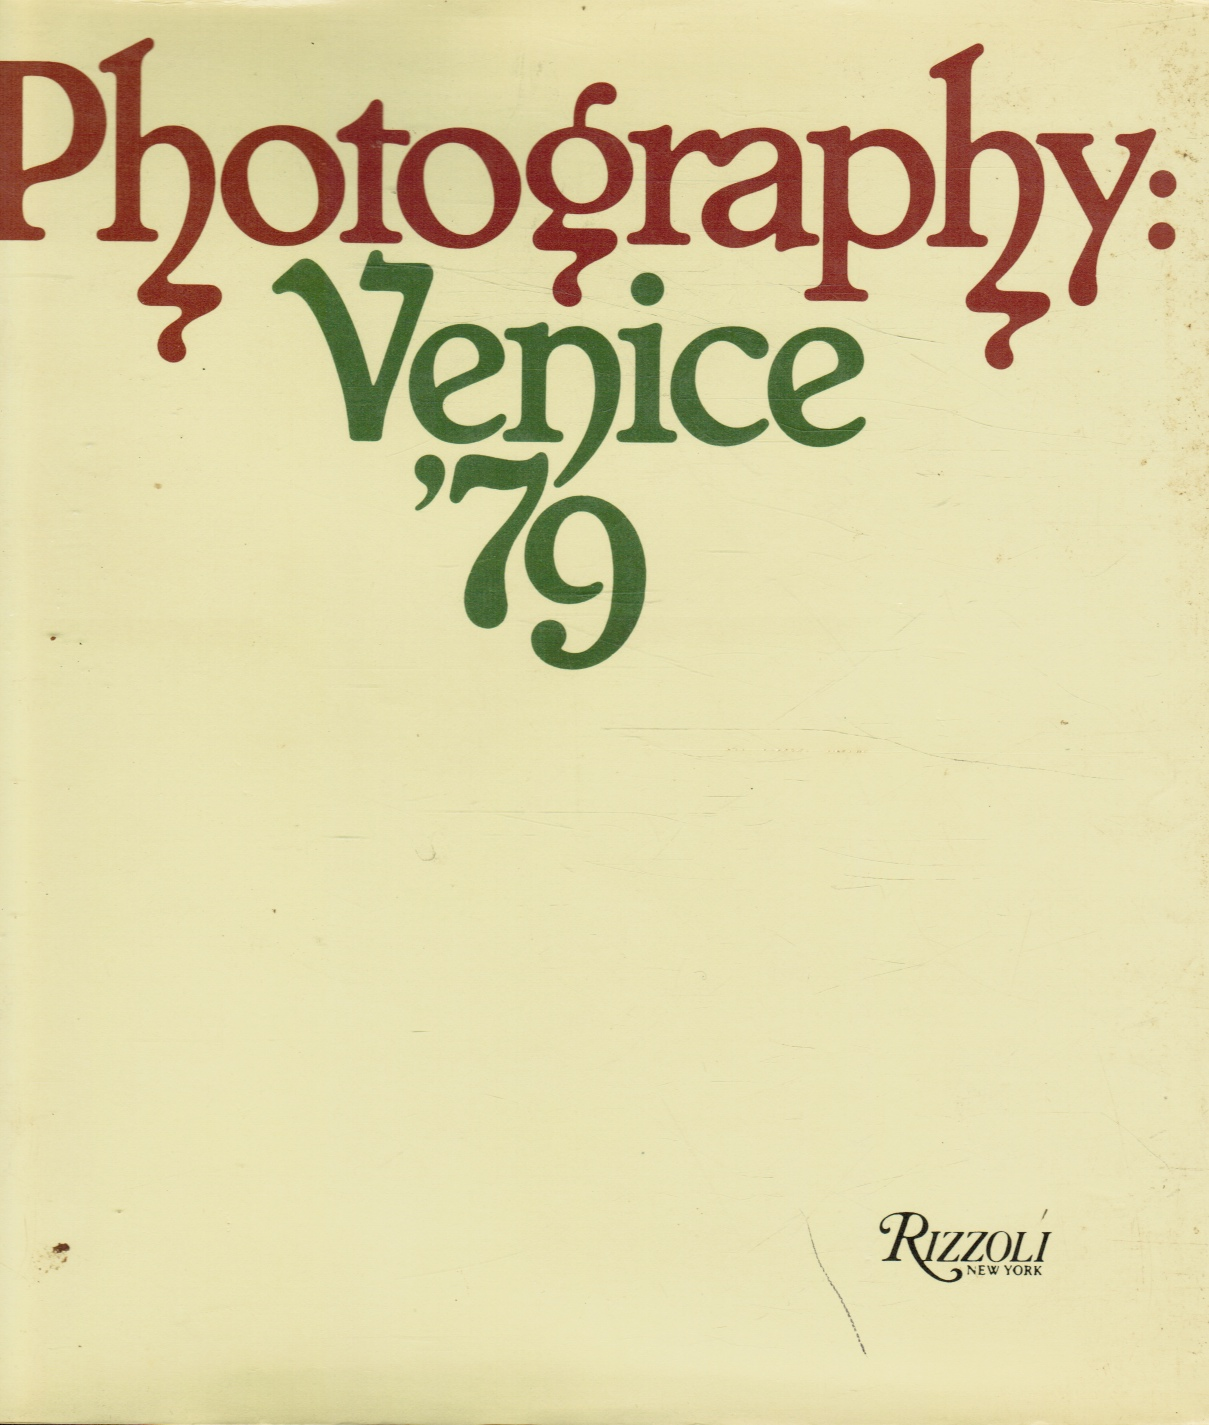 Image for Photography, Venice '79